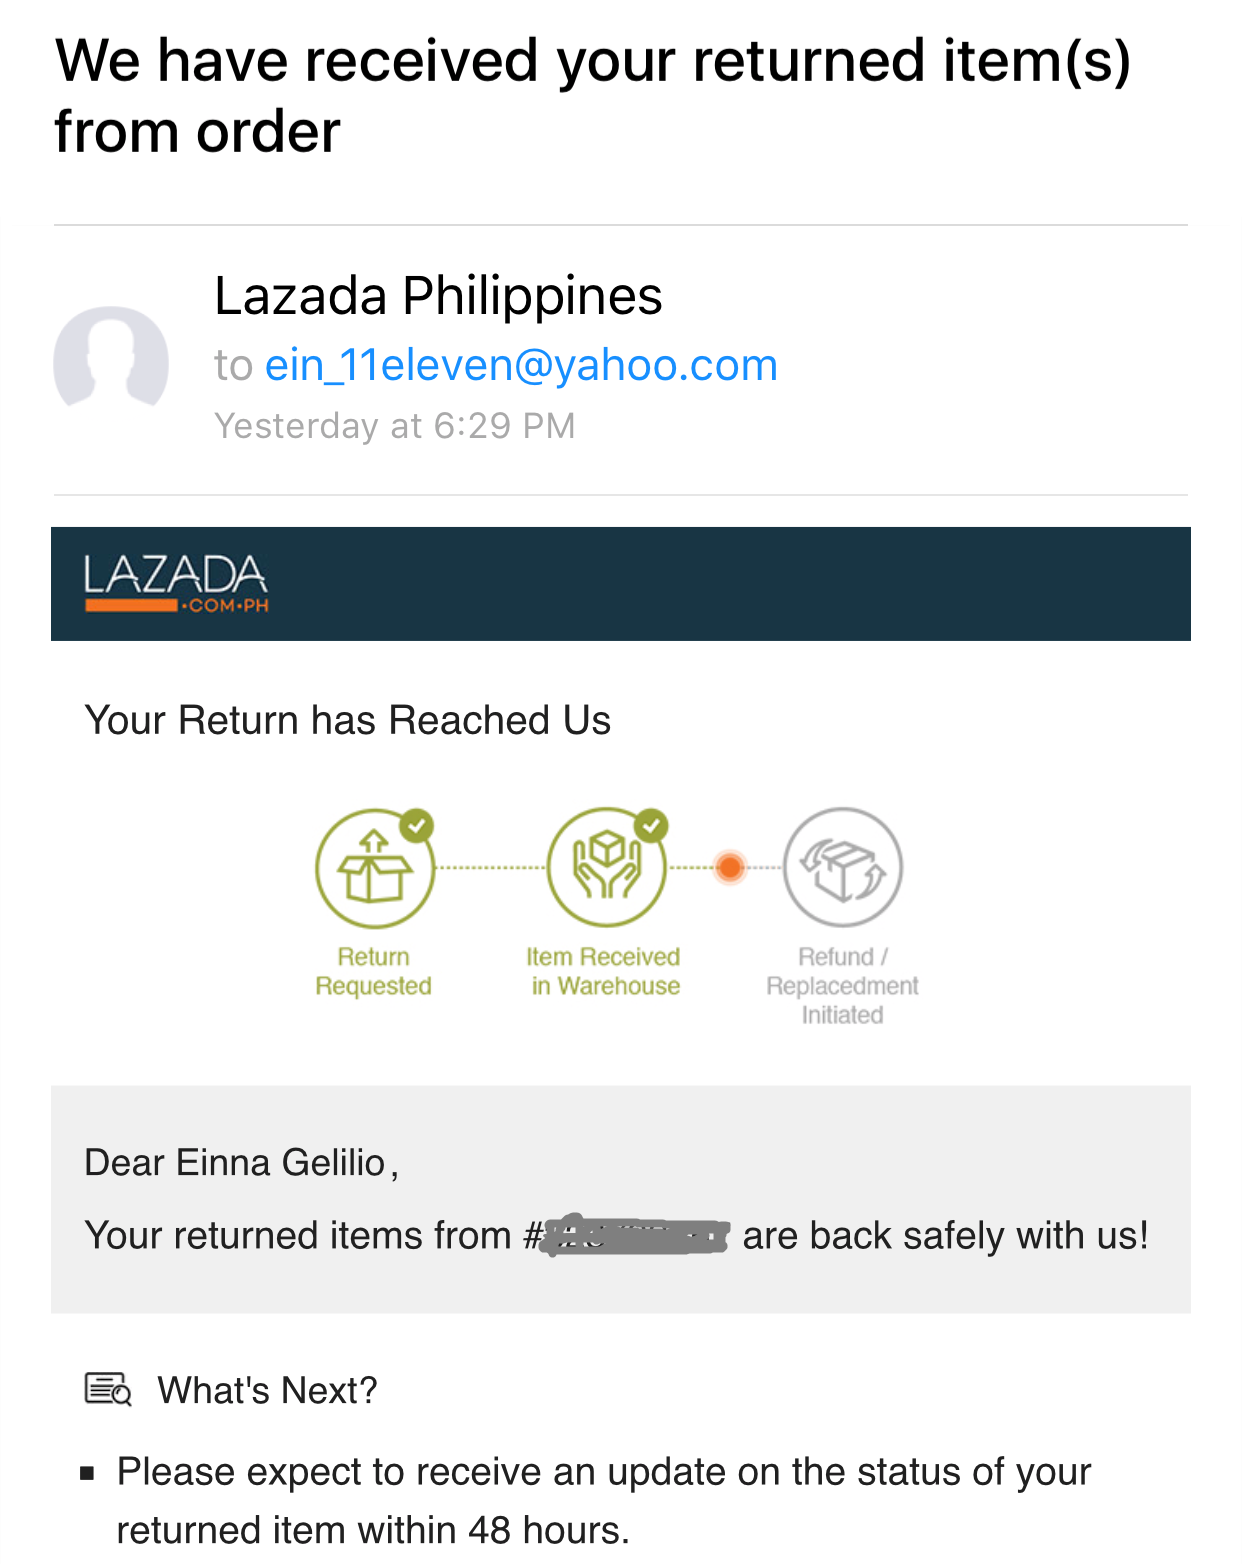 Mommy Tots: My Lazada Return and Refund Experience